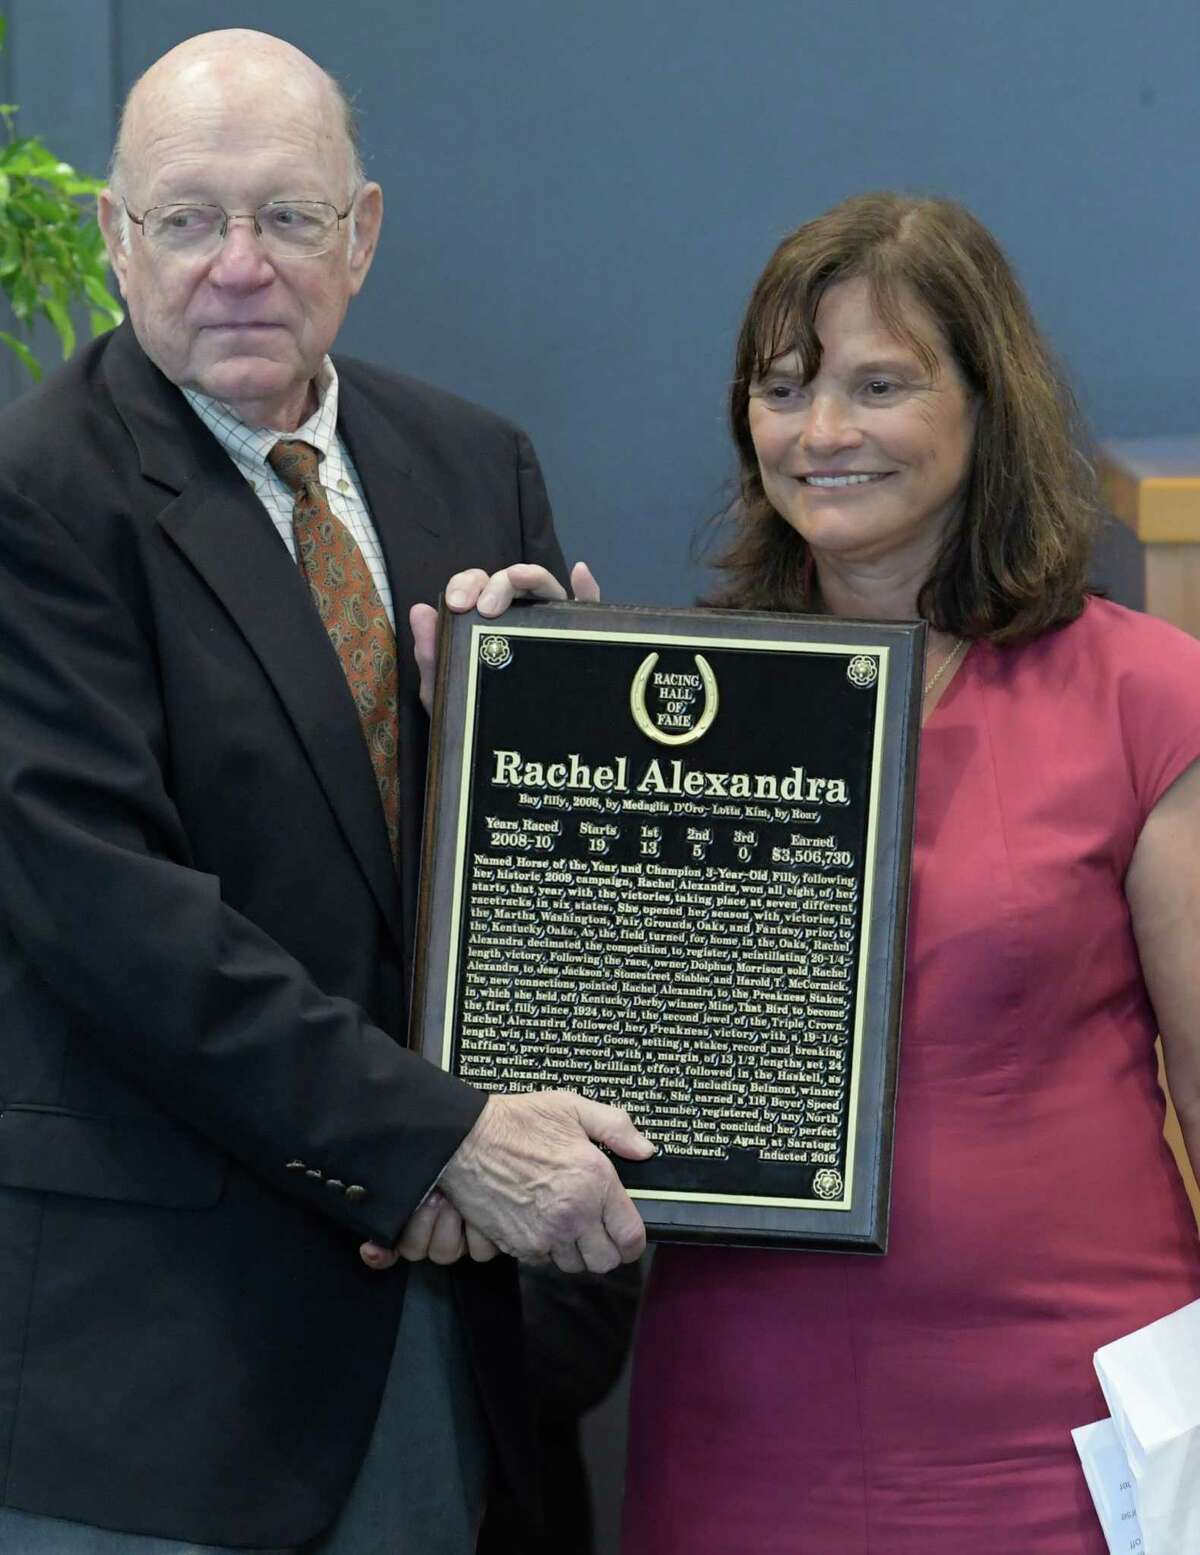 Barbara Banke receives the bronze plaque for the induction of her horse Rachel Alexandra from Ed Bowen of the Hall of Fame, in to the National Museum of Racing and Hall of Fame inductions at the Fasig-Tipton sales pavilion Friday Aug. 12, 2016 in Saratoga Springs, N.Y. (Skip Dickstein/Times Union)